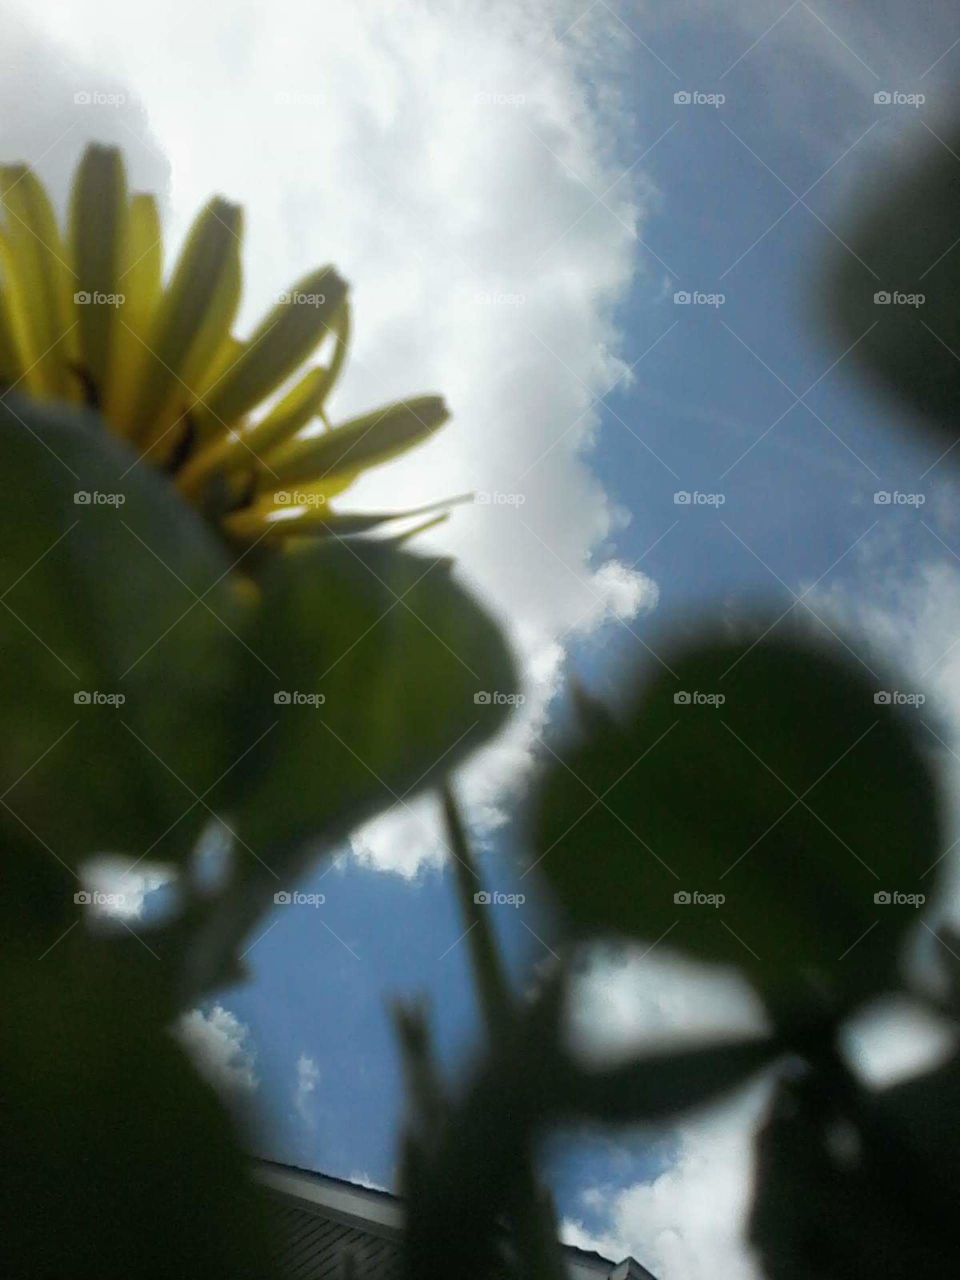 view of the sky from under the dandelions